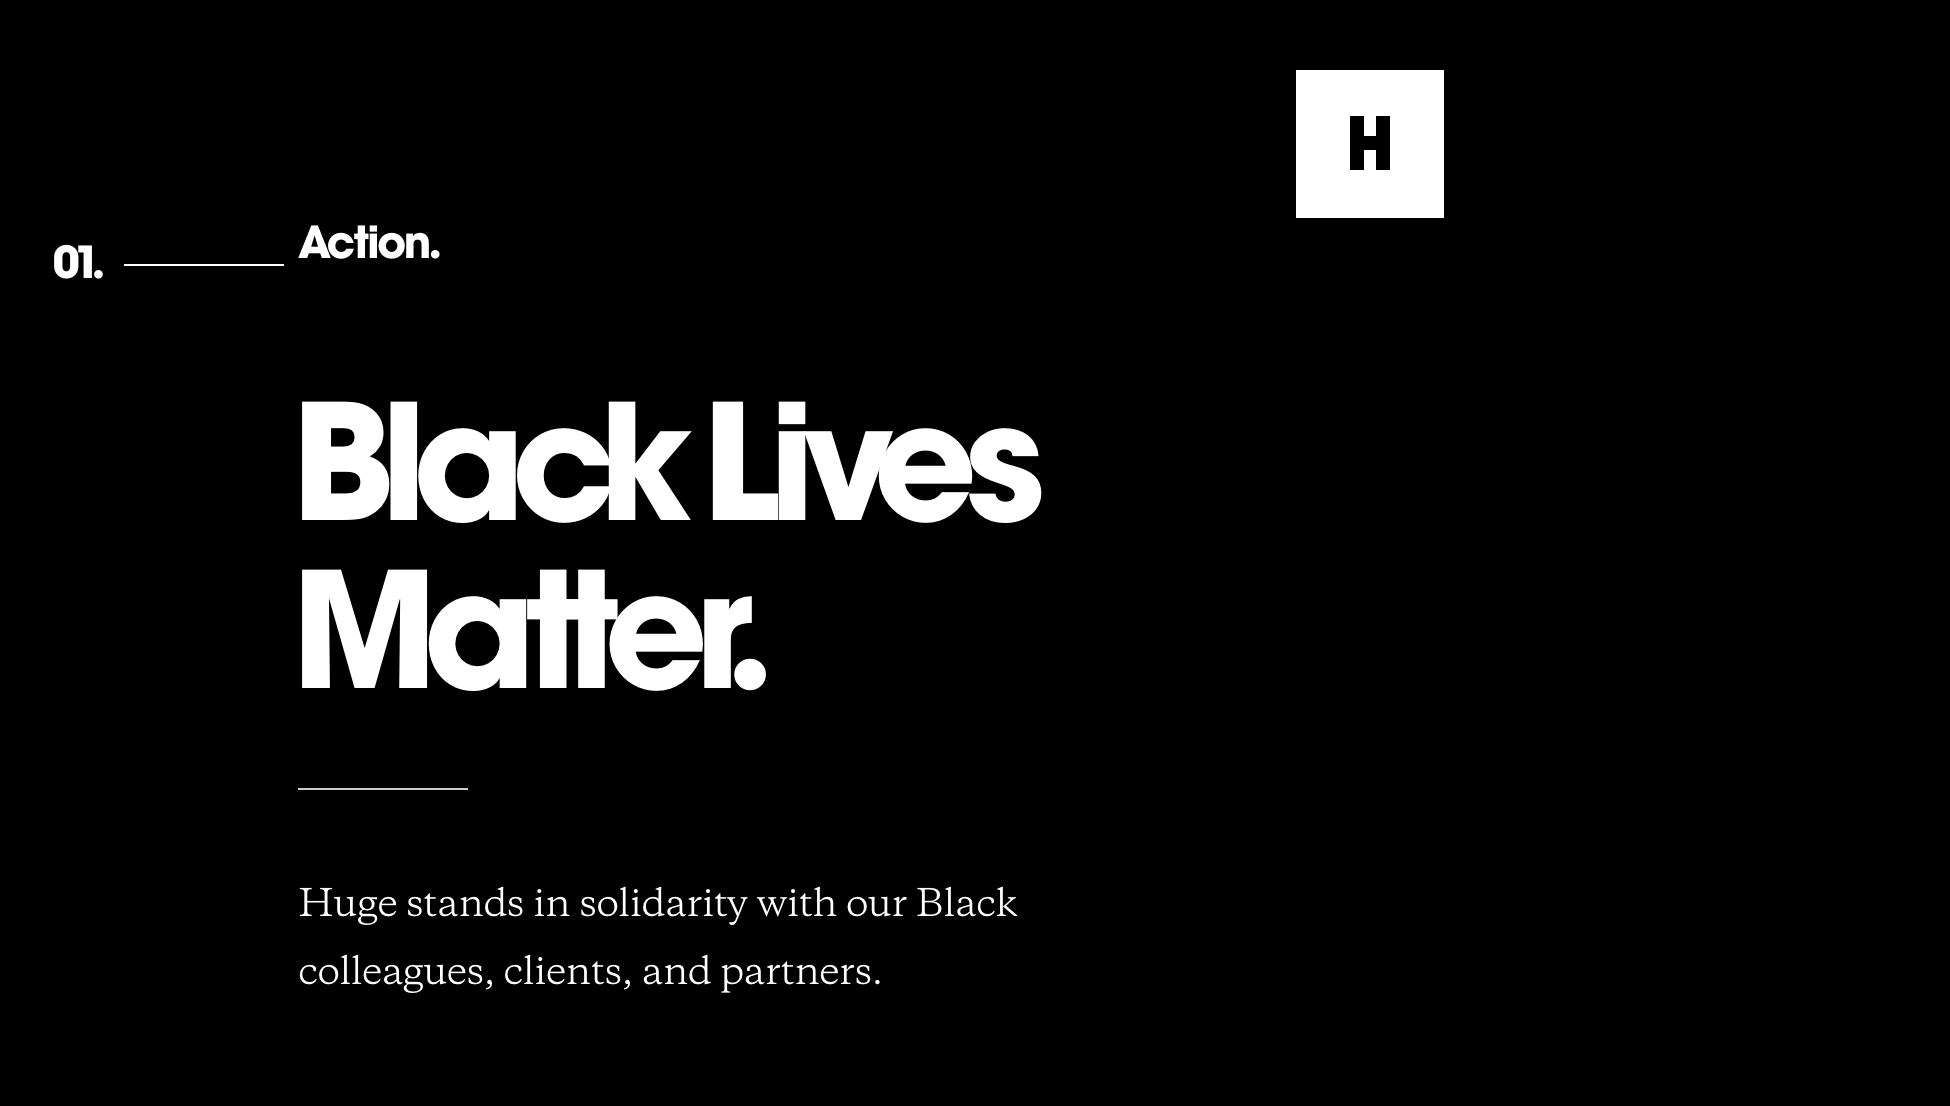 Huge Inc. showing support for the Black Lives Matter movement in their workspace.